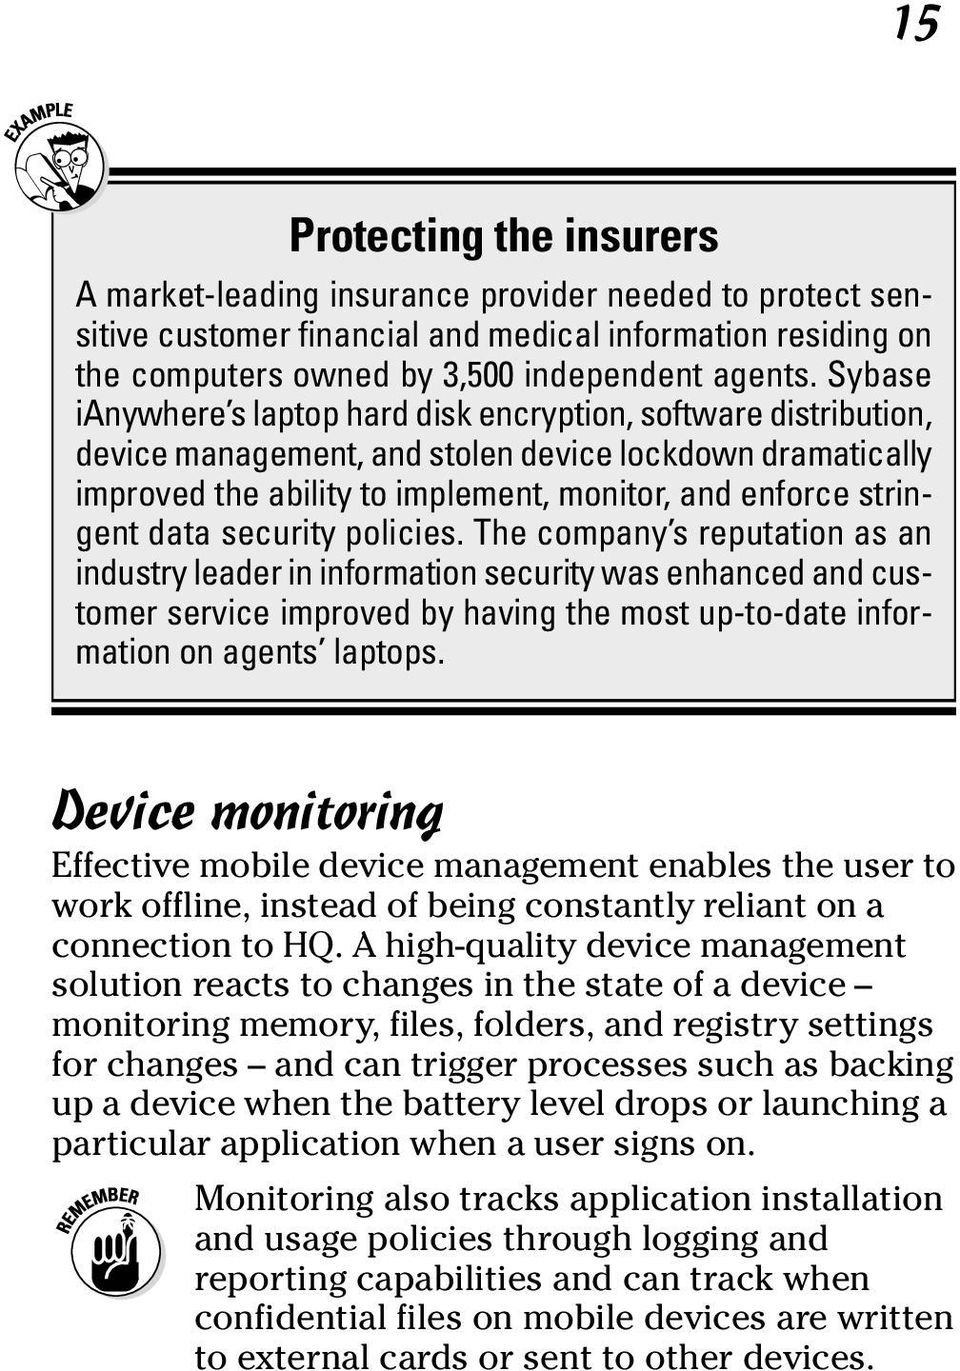 data security policies. The company s reputation as an industry leader in information security was enhanced and customer service improved by having the most up-to-date information on agents laptops.